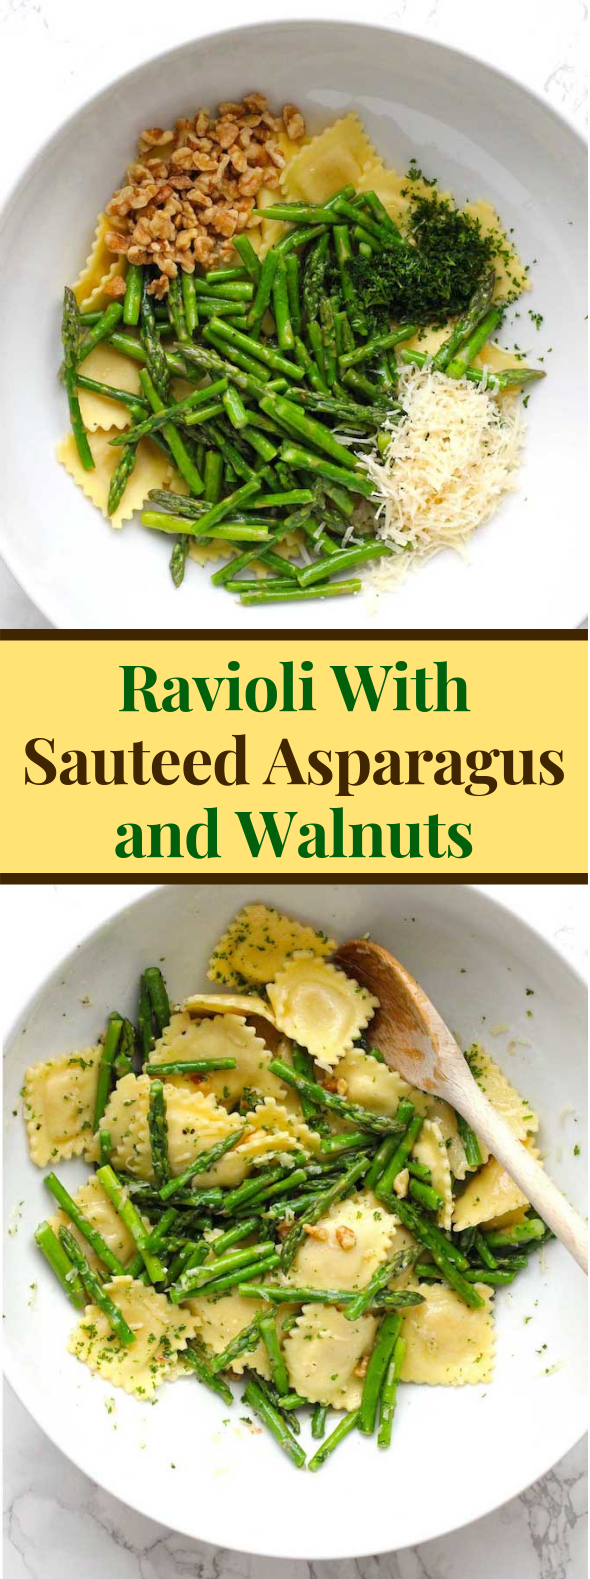 Ravioli With Sauteed Asparagus and Walnuts #dinner #vegetarian